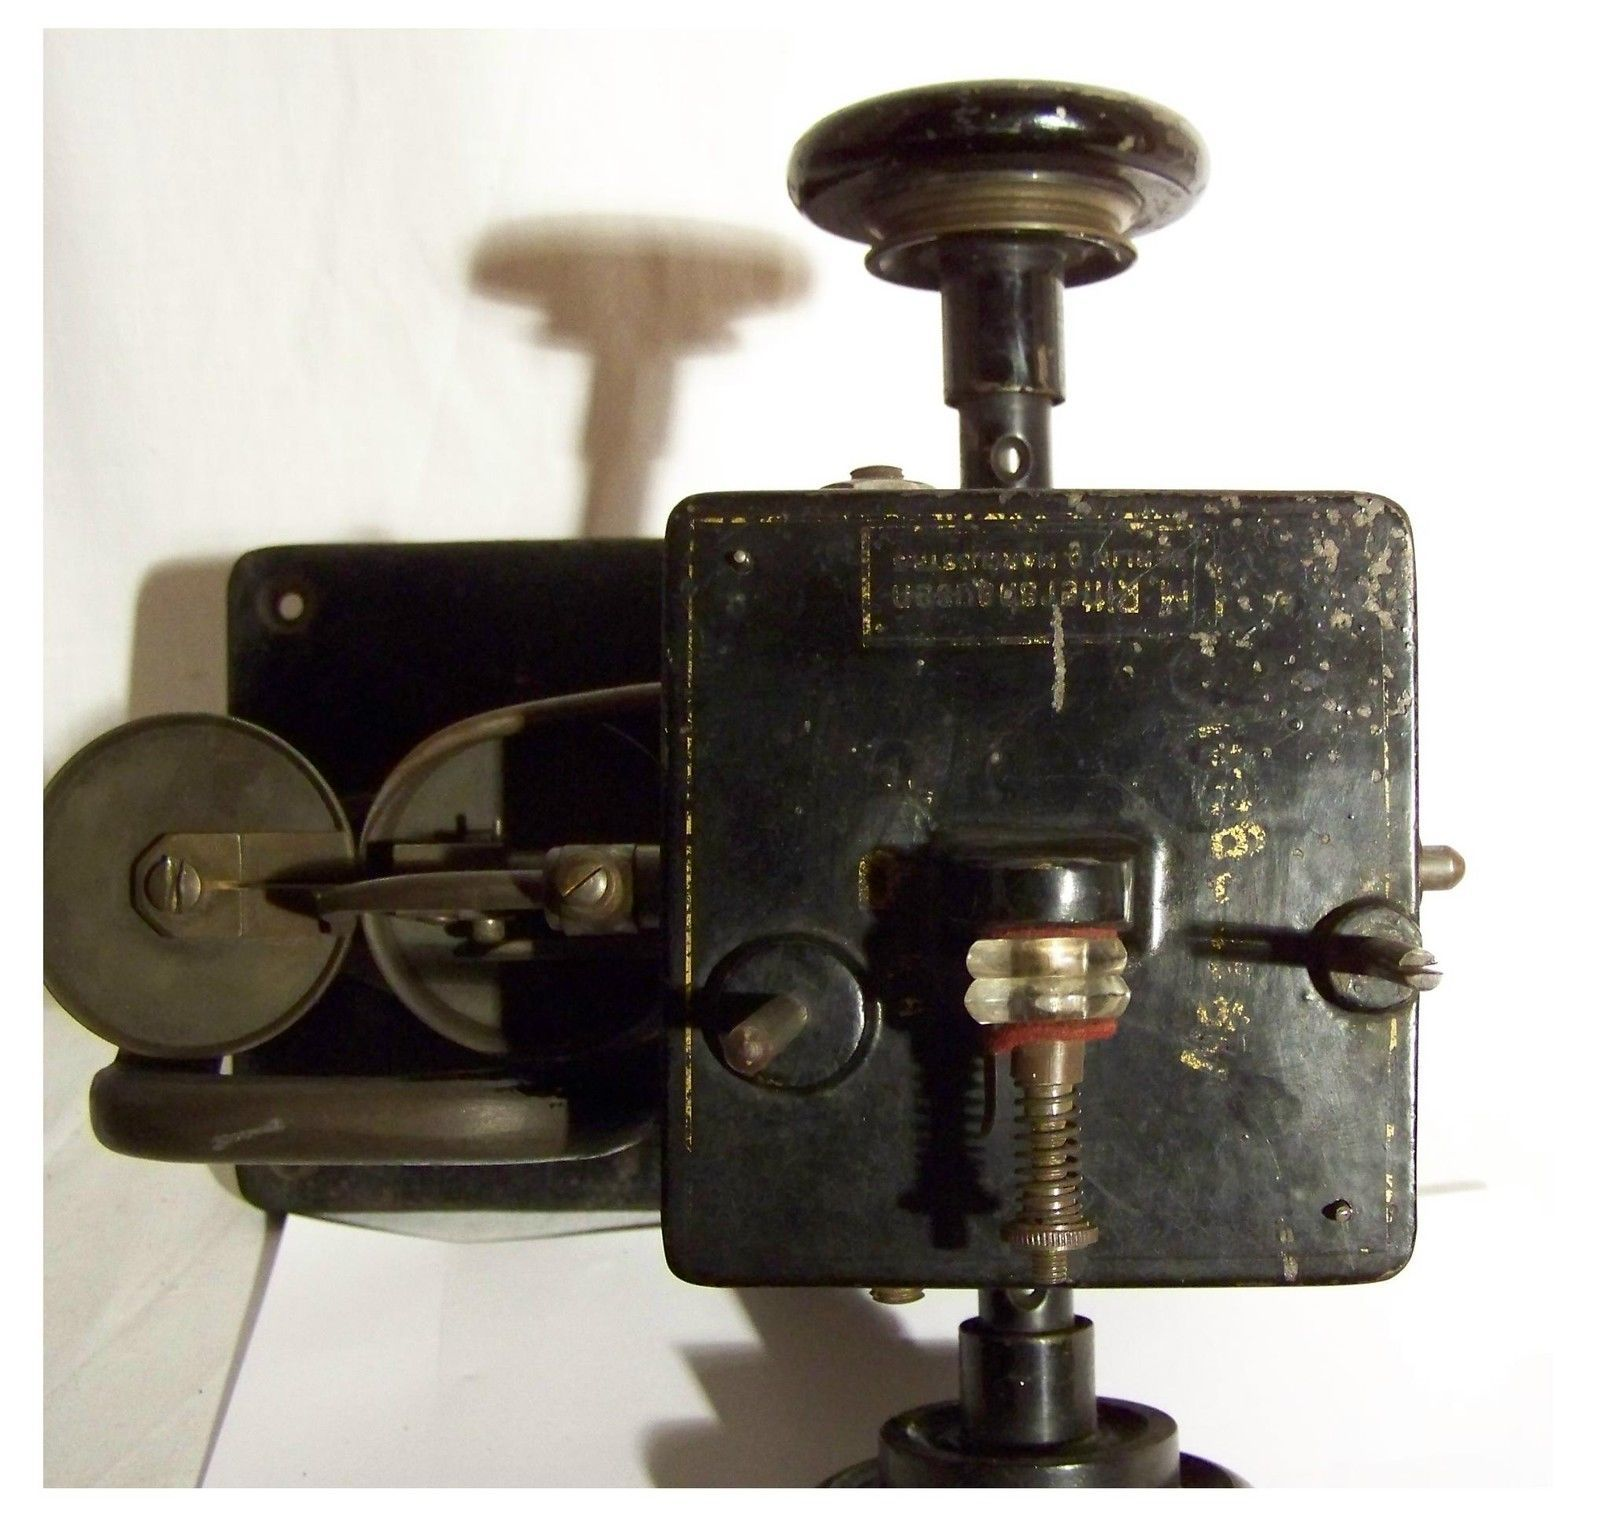 """(Special fur and leather sewing machine from """"M Rittershausen, Berlin DRP"""", from 1871. Socket 27x16cm, Height 24cm. The machine must be mounted on a wooden plate with cut-out for the visible parts of the machine. Weight 13kg.)    SPEZIAL Nähmaschine Sewing Machine Pelz Ledernähmaschine Rittershausen 1871 